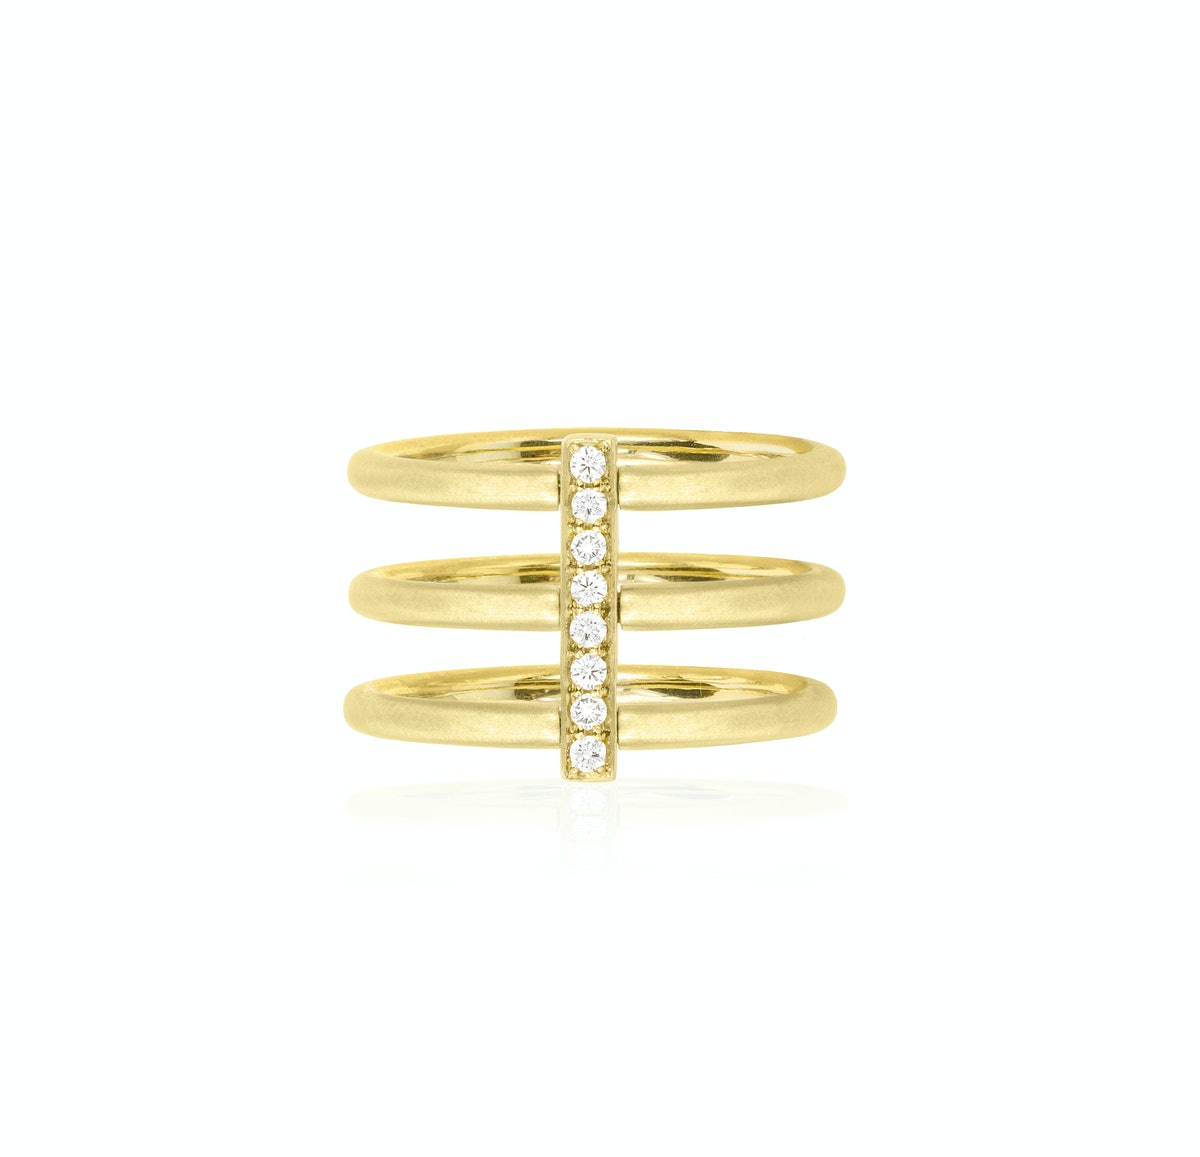 Carelle gold and diamond ring